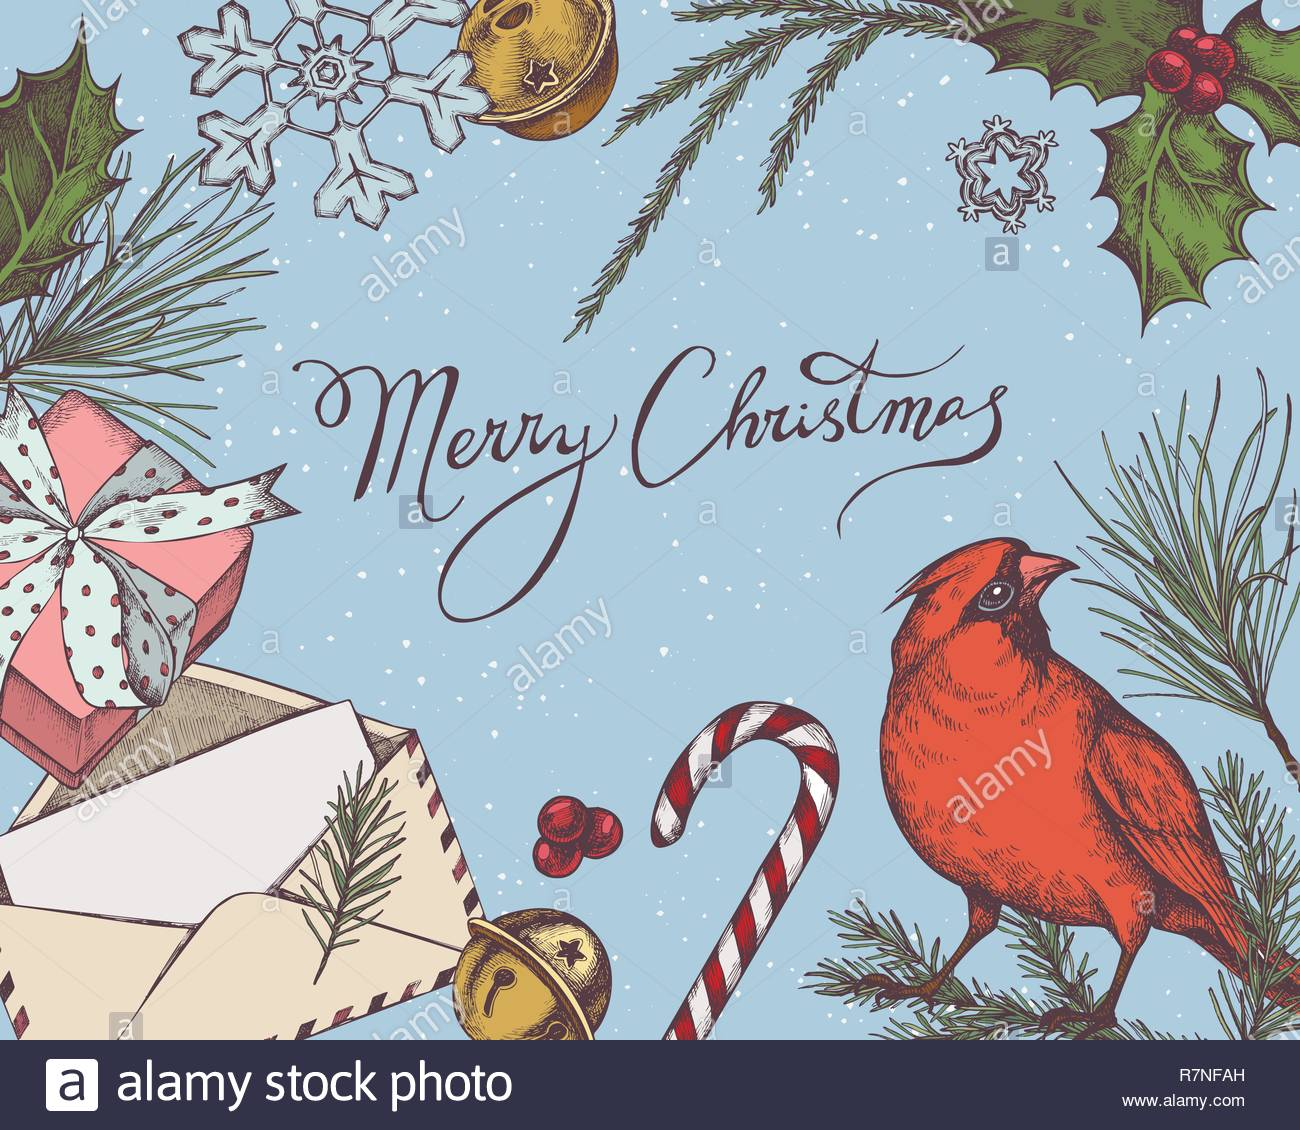 Vector composition with colored jingles, cardinal, lollipop, snowflakes, lettering, holly, pine branch, spruce, gift boxes, redwood - Stock Image